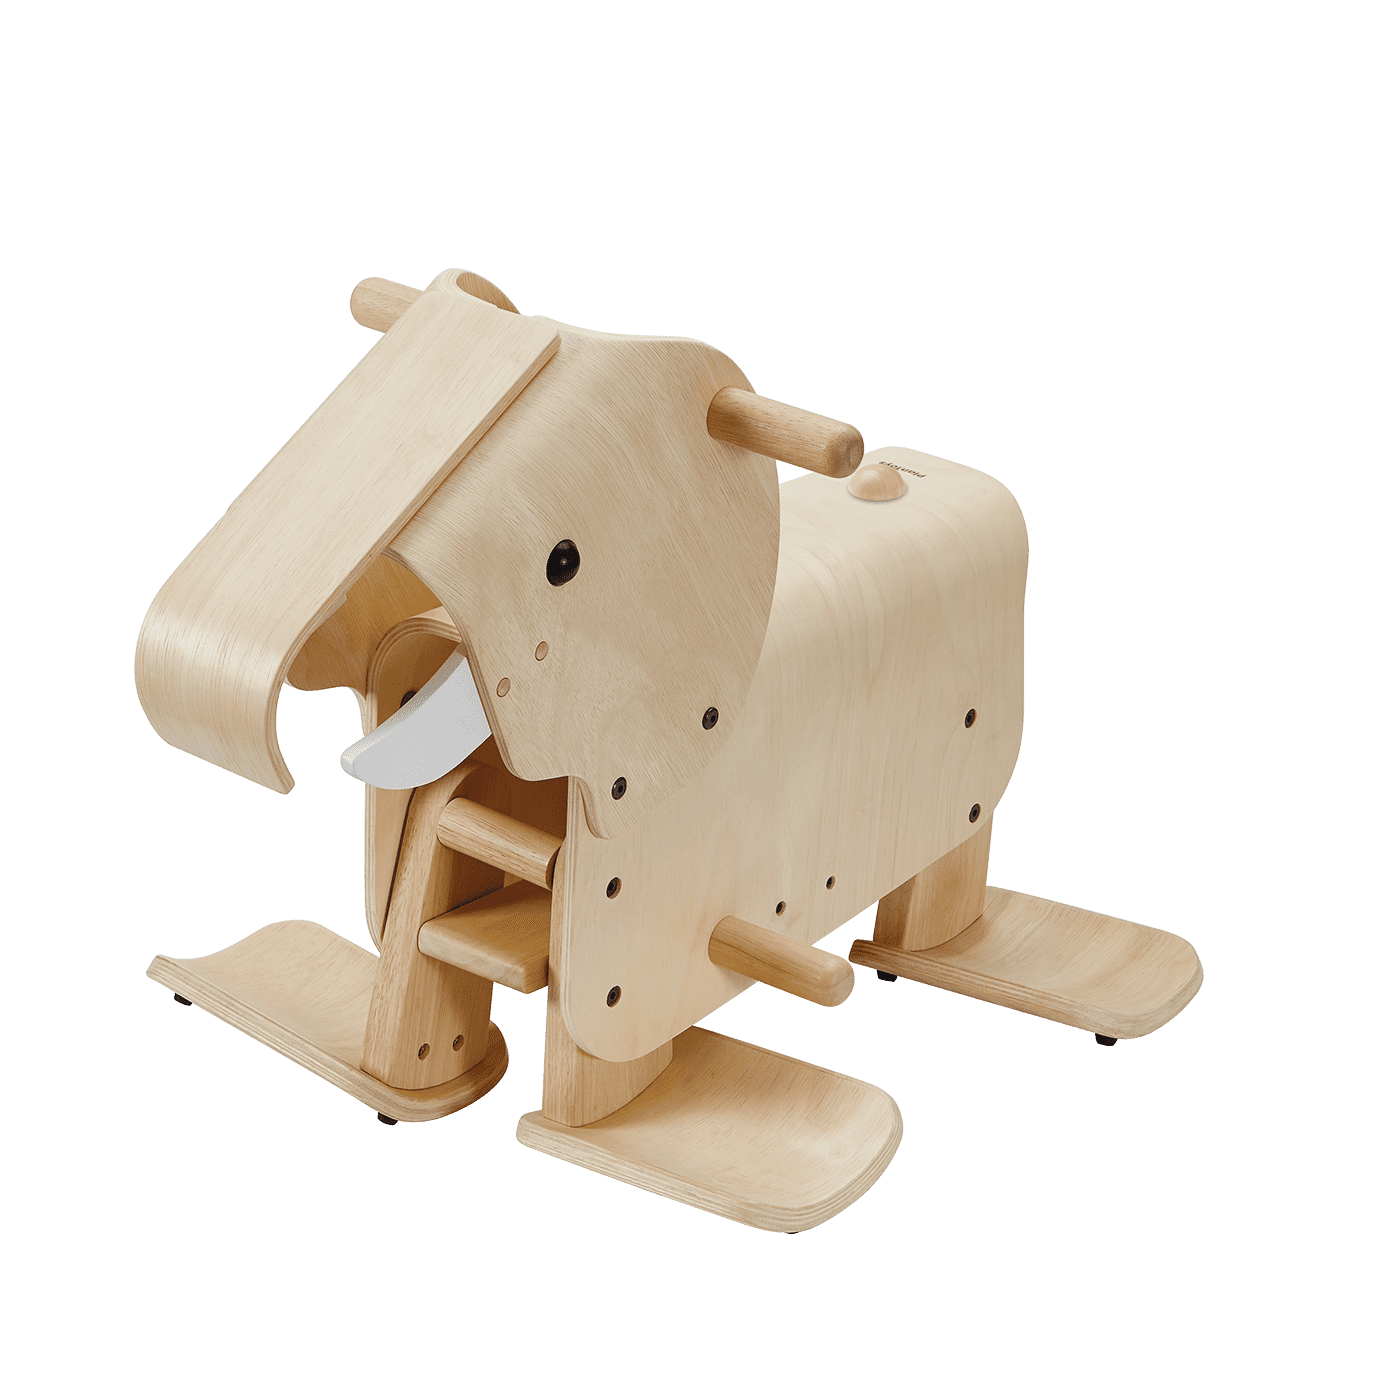 3503_PlanToys_WALKING_ELEPHANT_Active_Play_Imagination_Fine_Motor_Coordination_Language_and_Communications_2yrs_Wooden_toys_Education_toys_Safety_Toys_Non-toxic_0.png